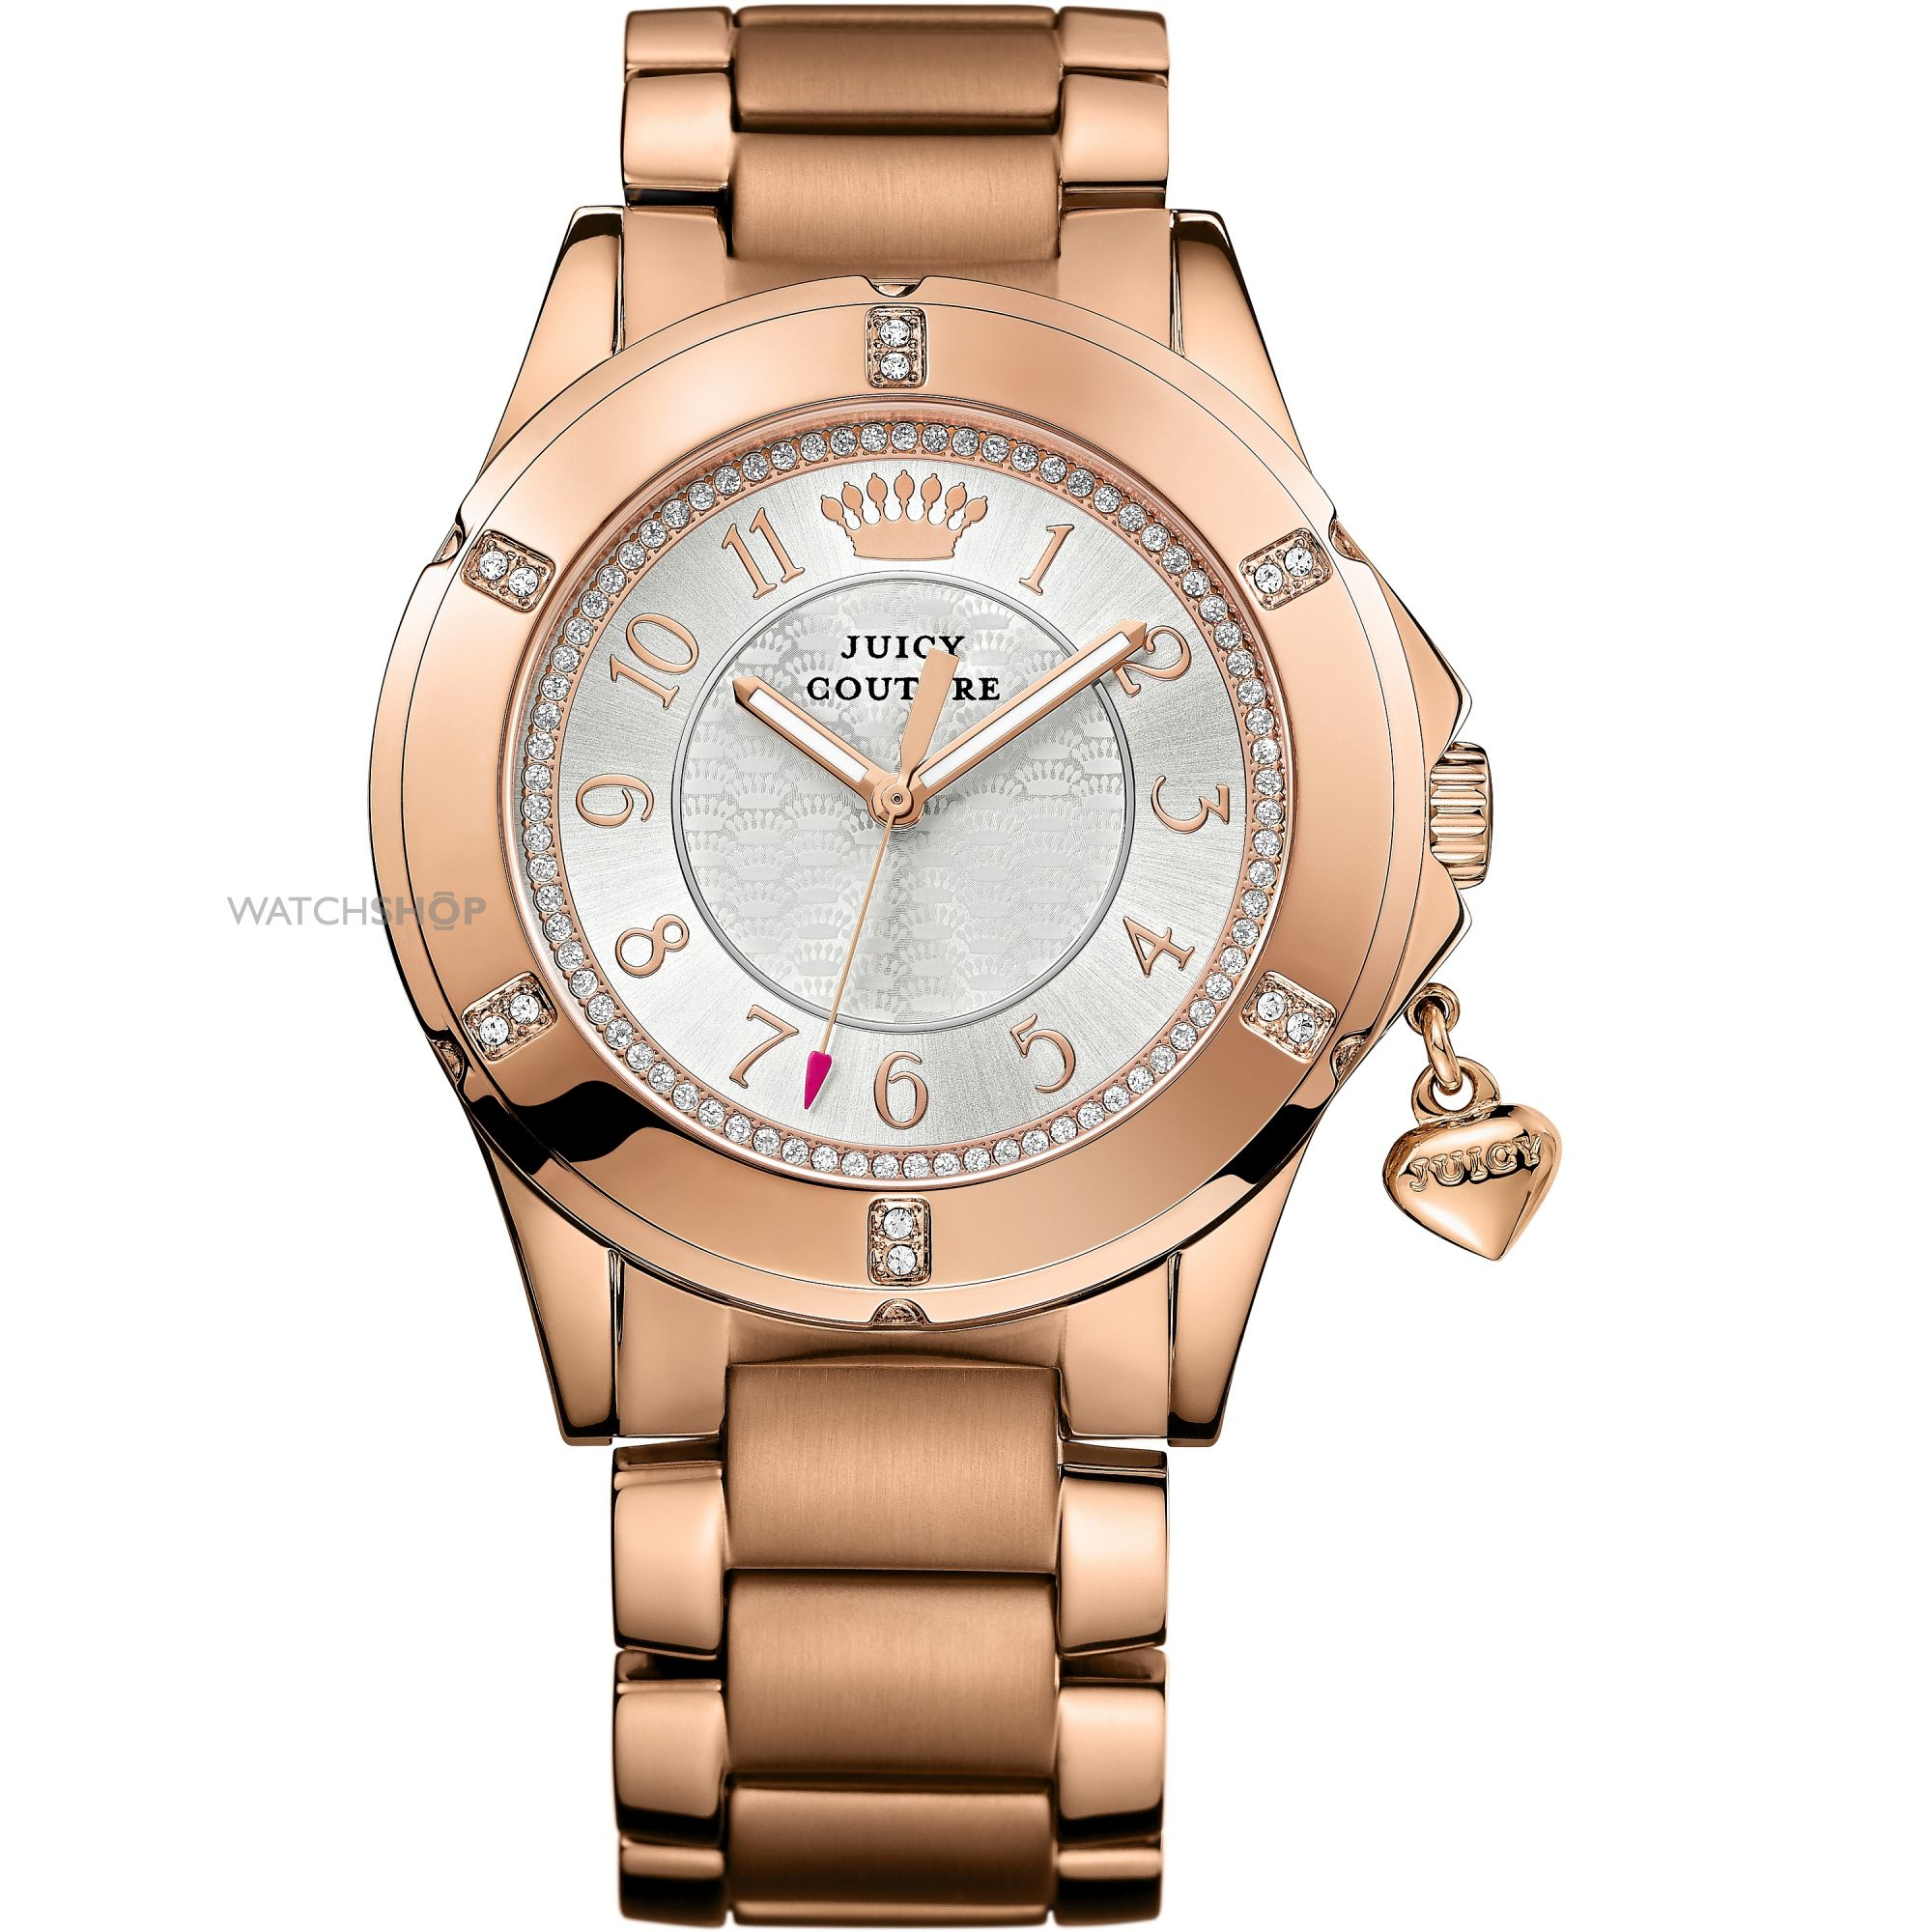 Juicy Couture Womens 1901201 Rich Girl Analog Display Quartz Rose